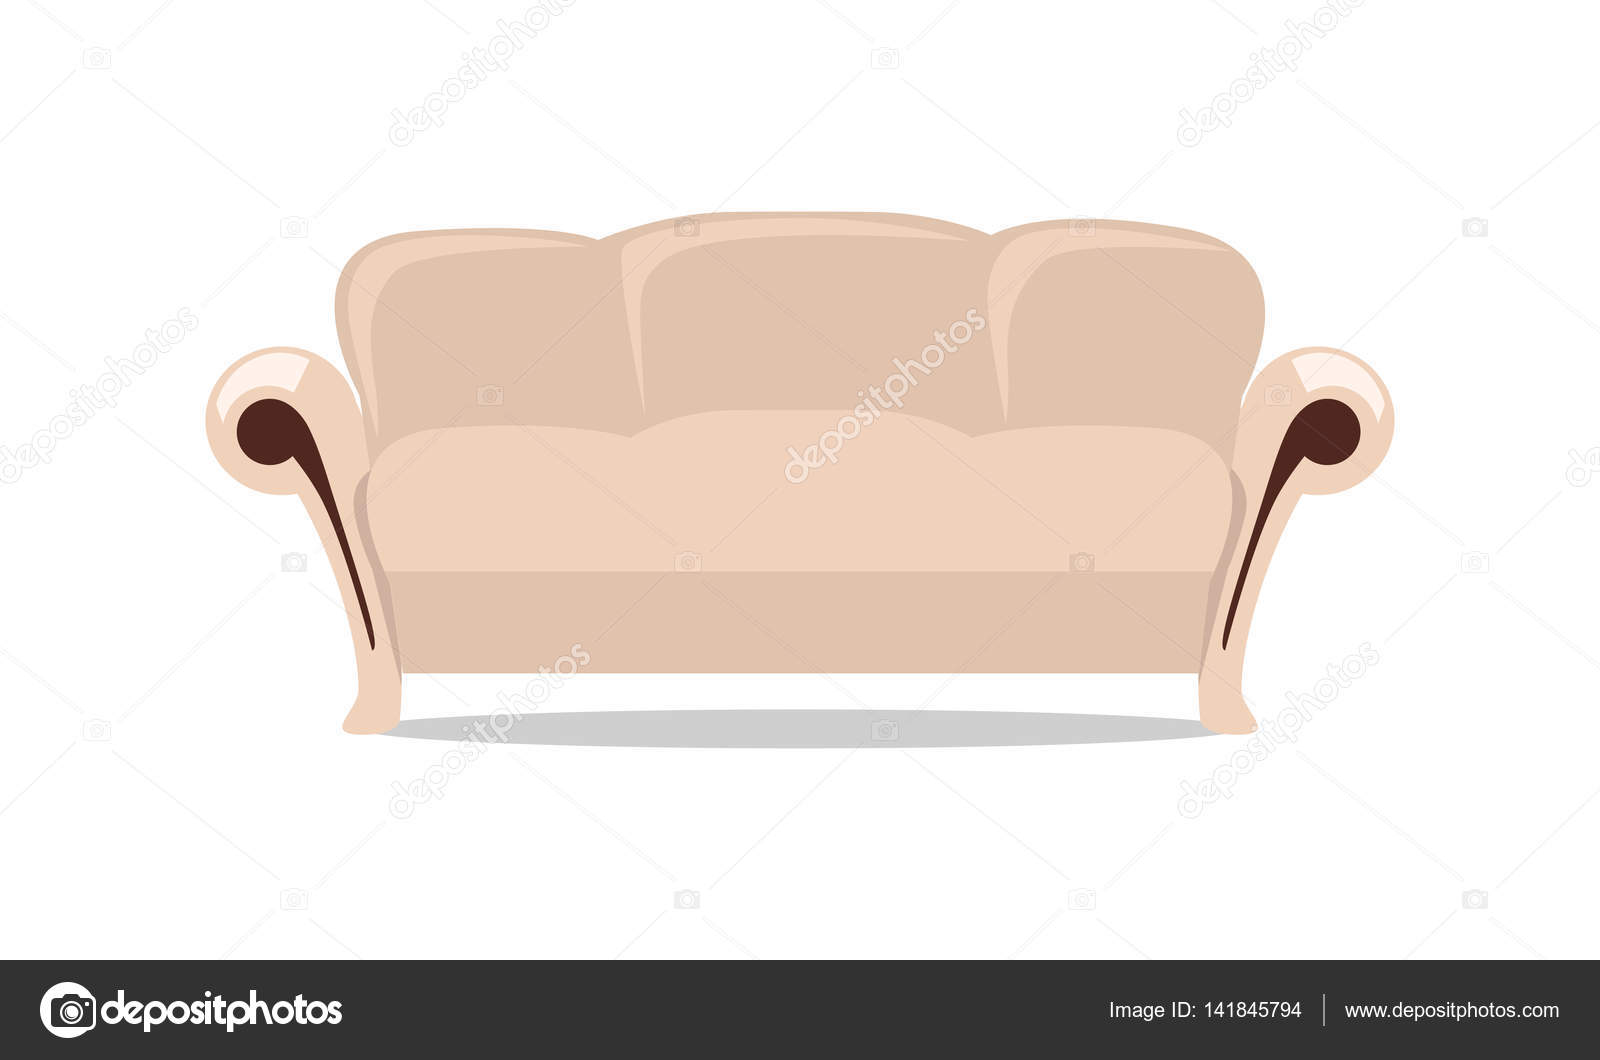 Sofa Vector Free Leather Sofa Vector Illustration In Flat Design Stock Vector